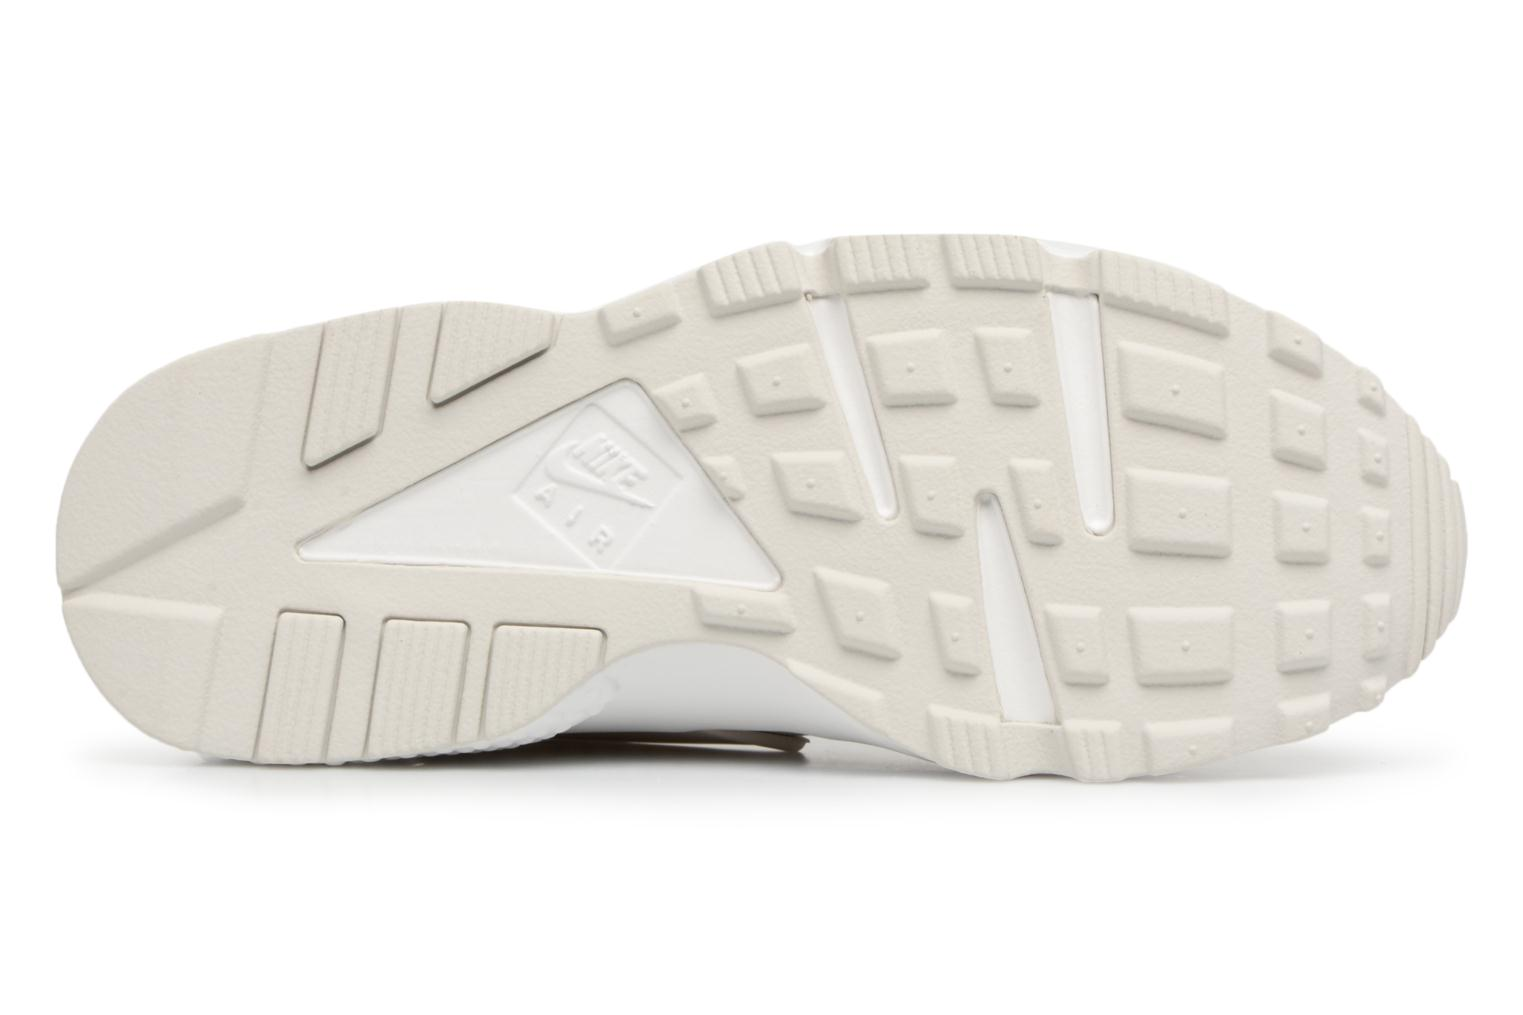 Wmns Air Huarache Run Phantom/Light Bone-Summit White-Phantom